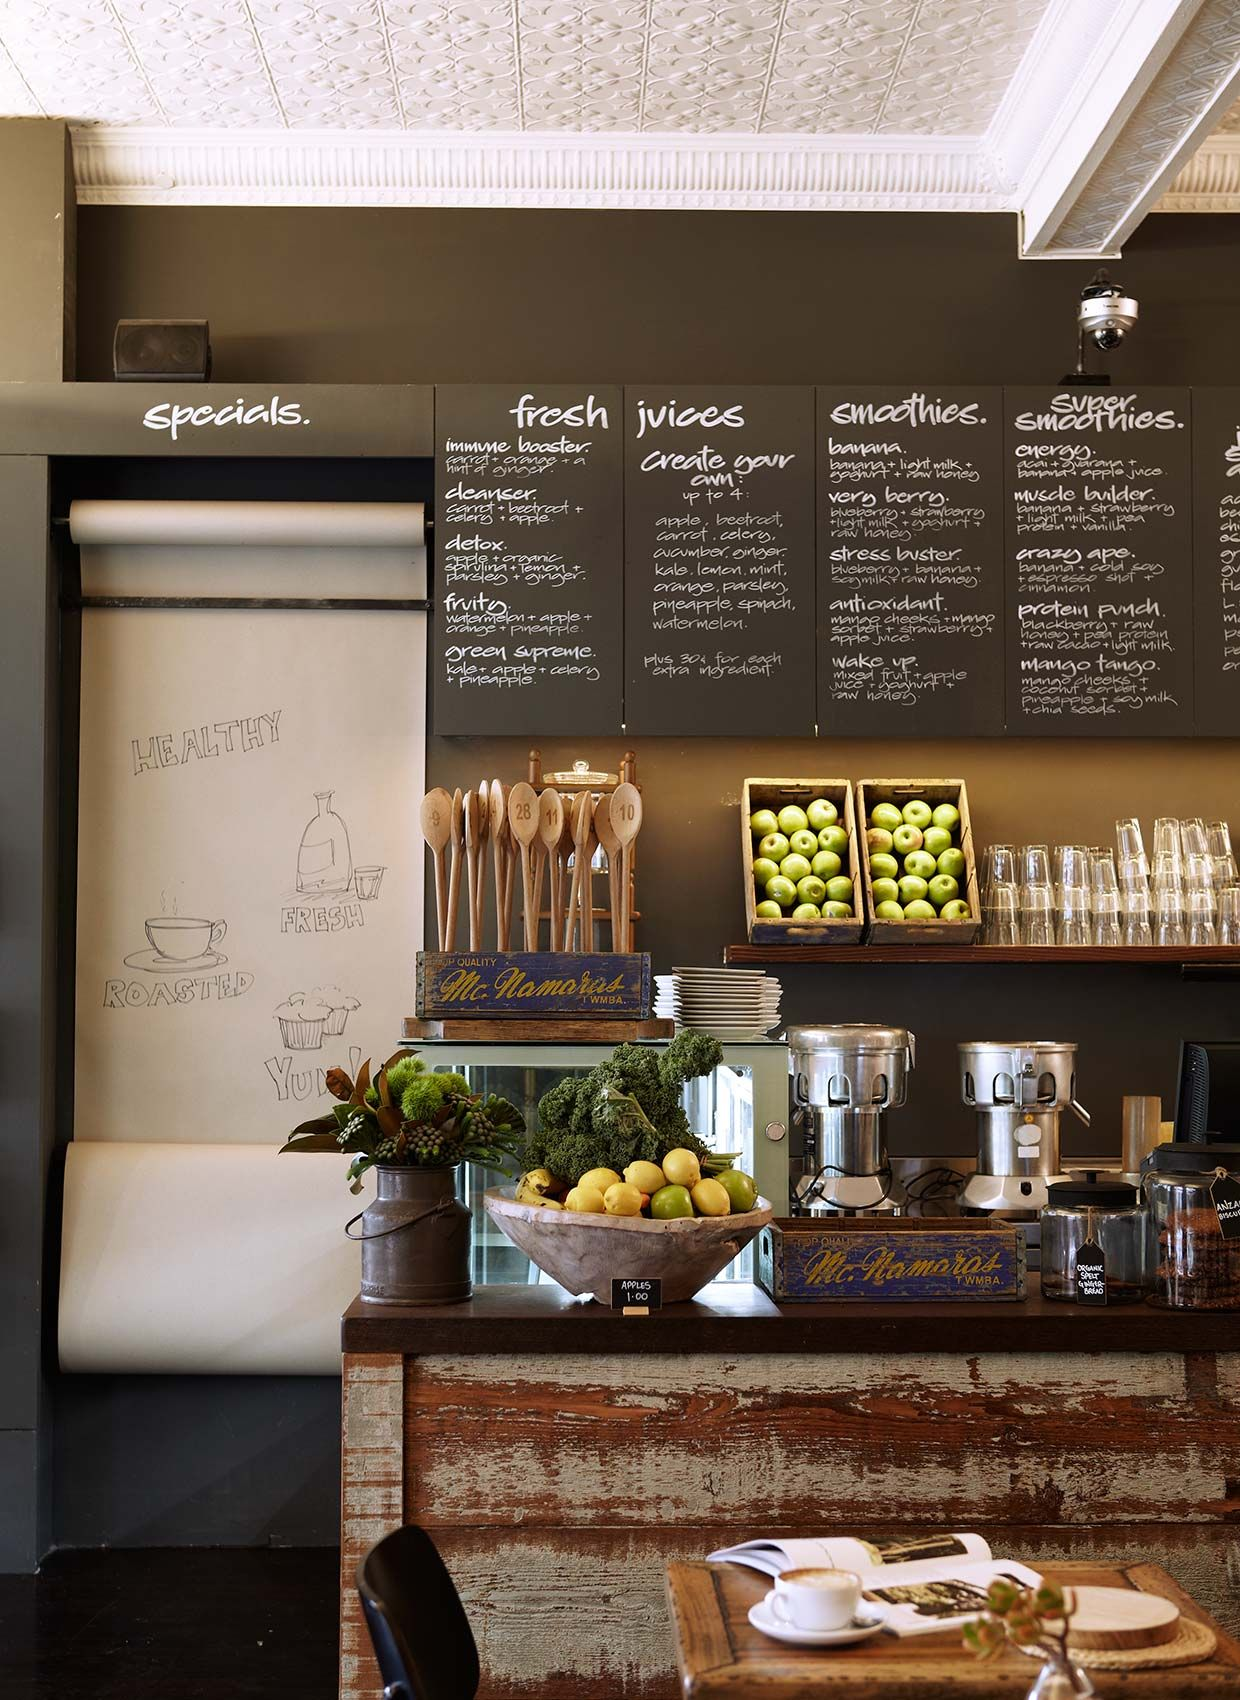 Bloom cafe commercial interior design by hare klein